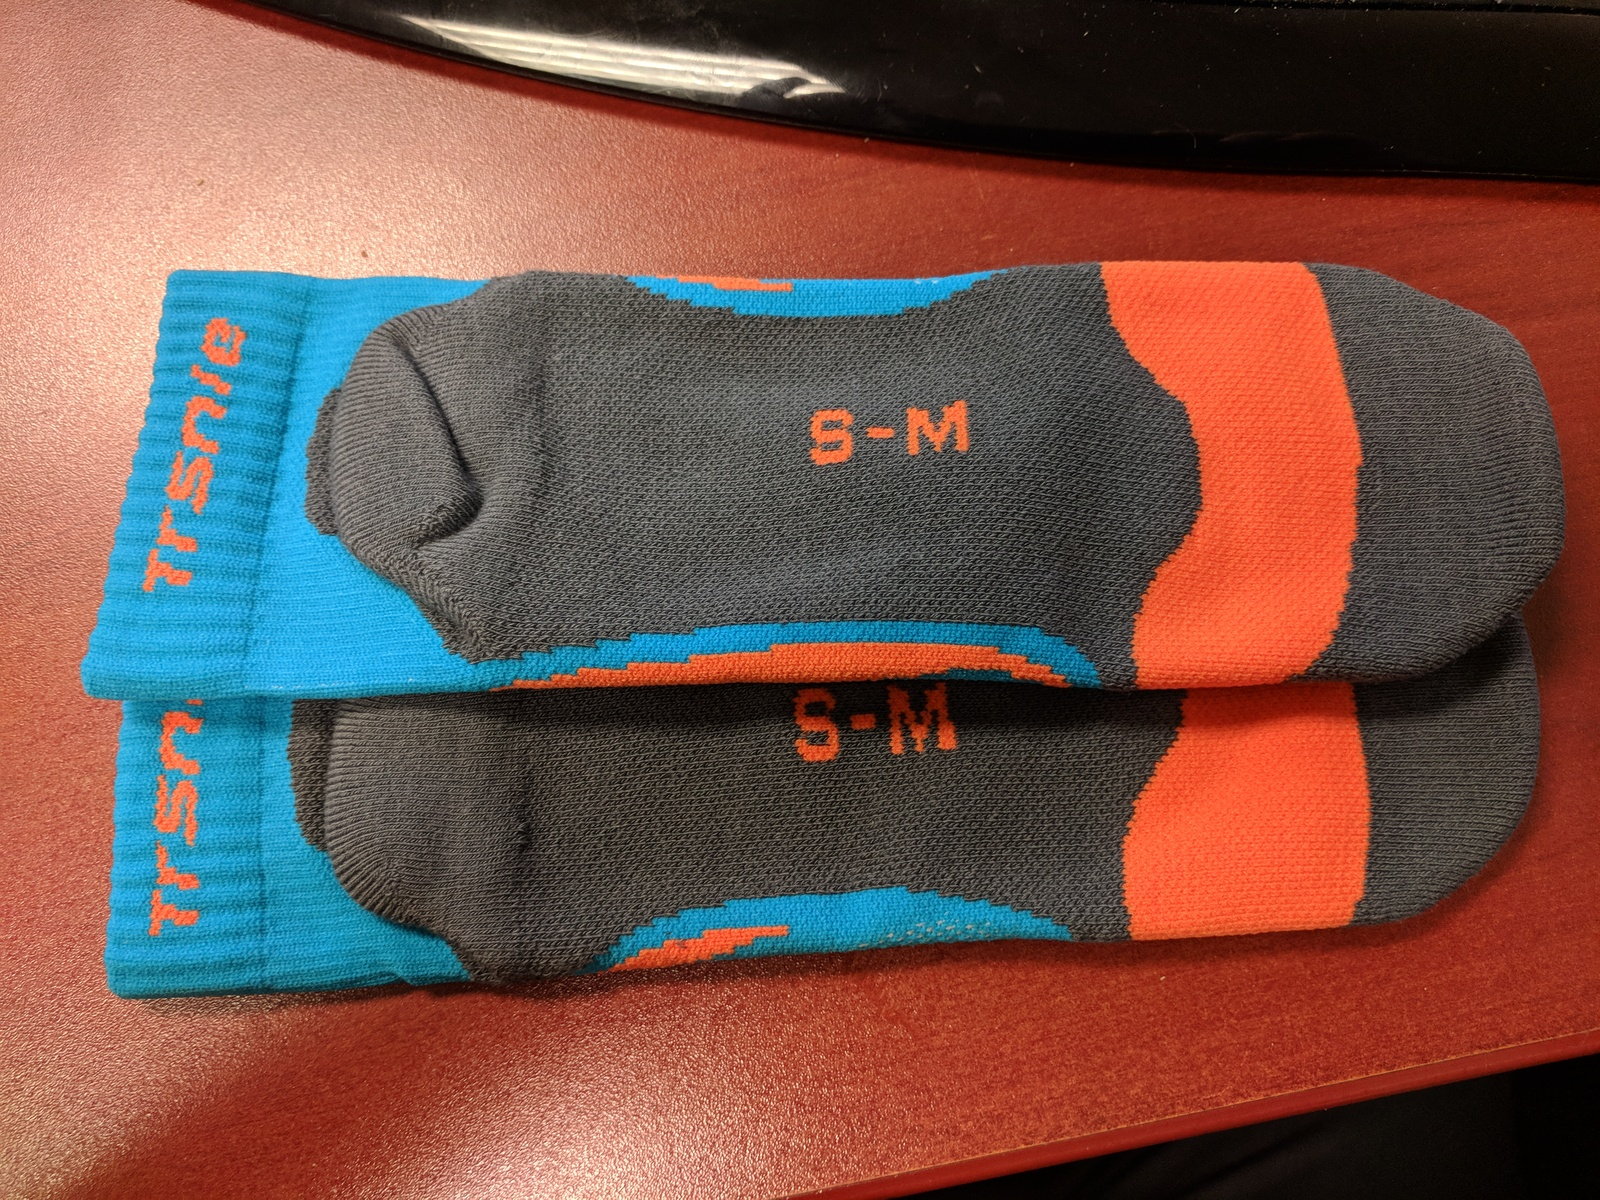 Great pair of socks